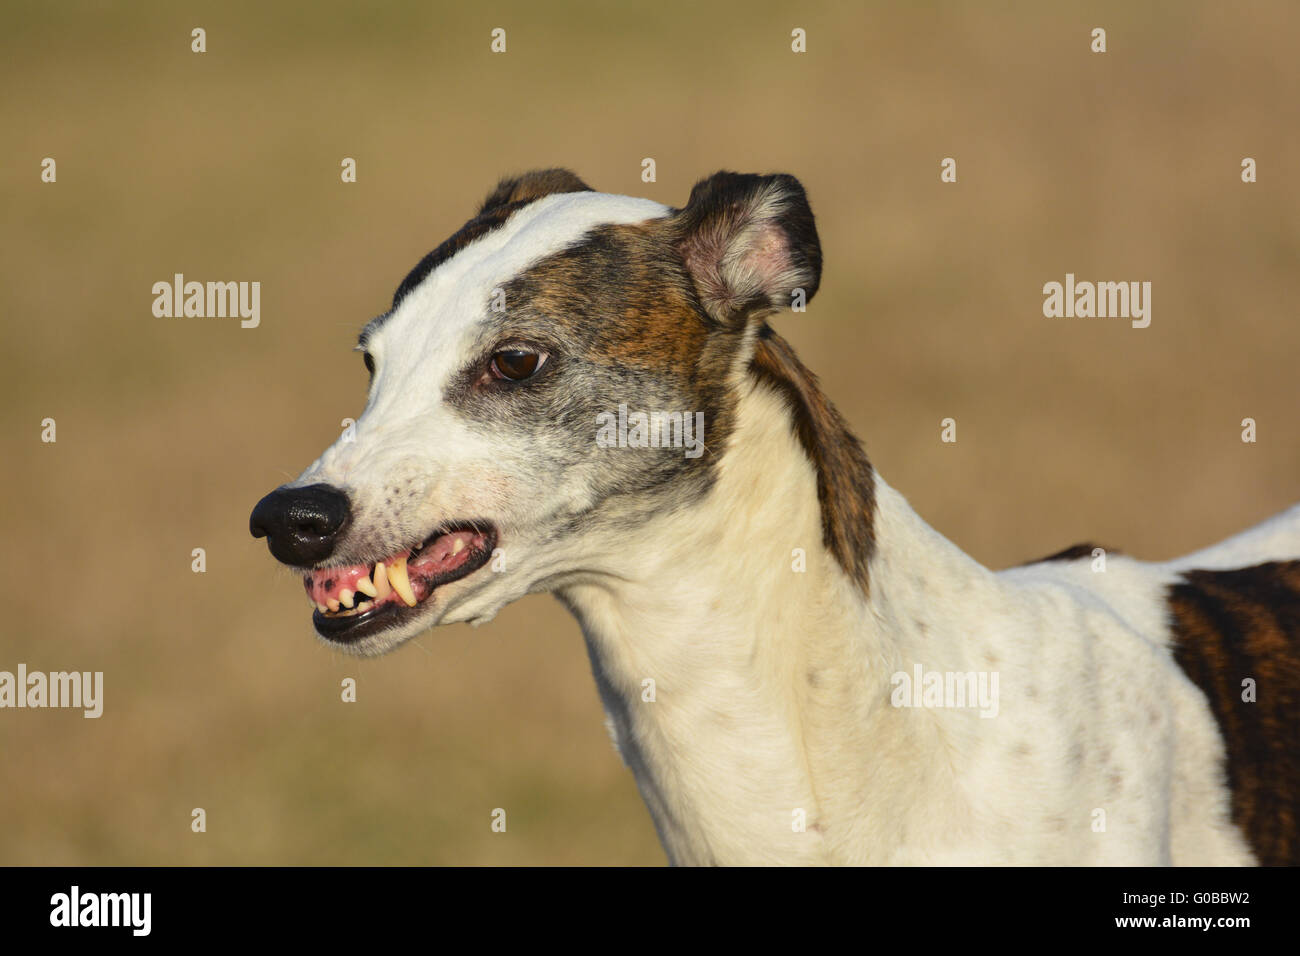 Threat of a dog Stock Photo